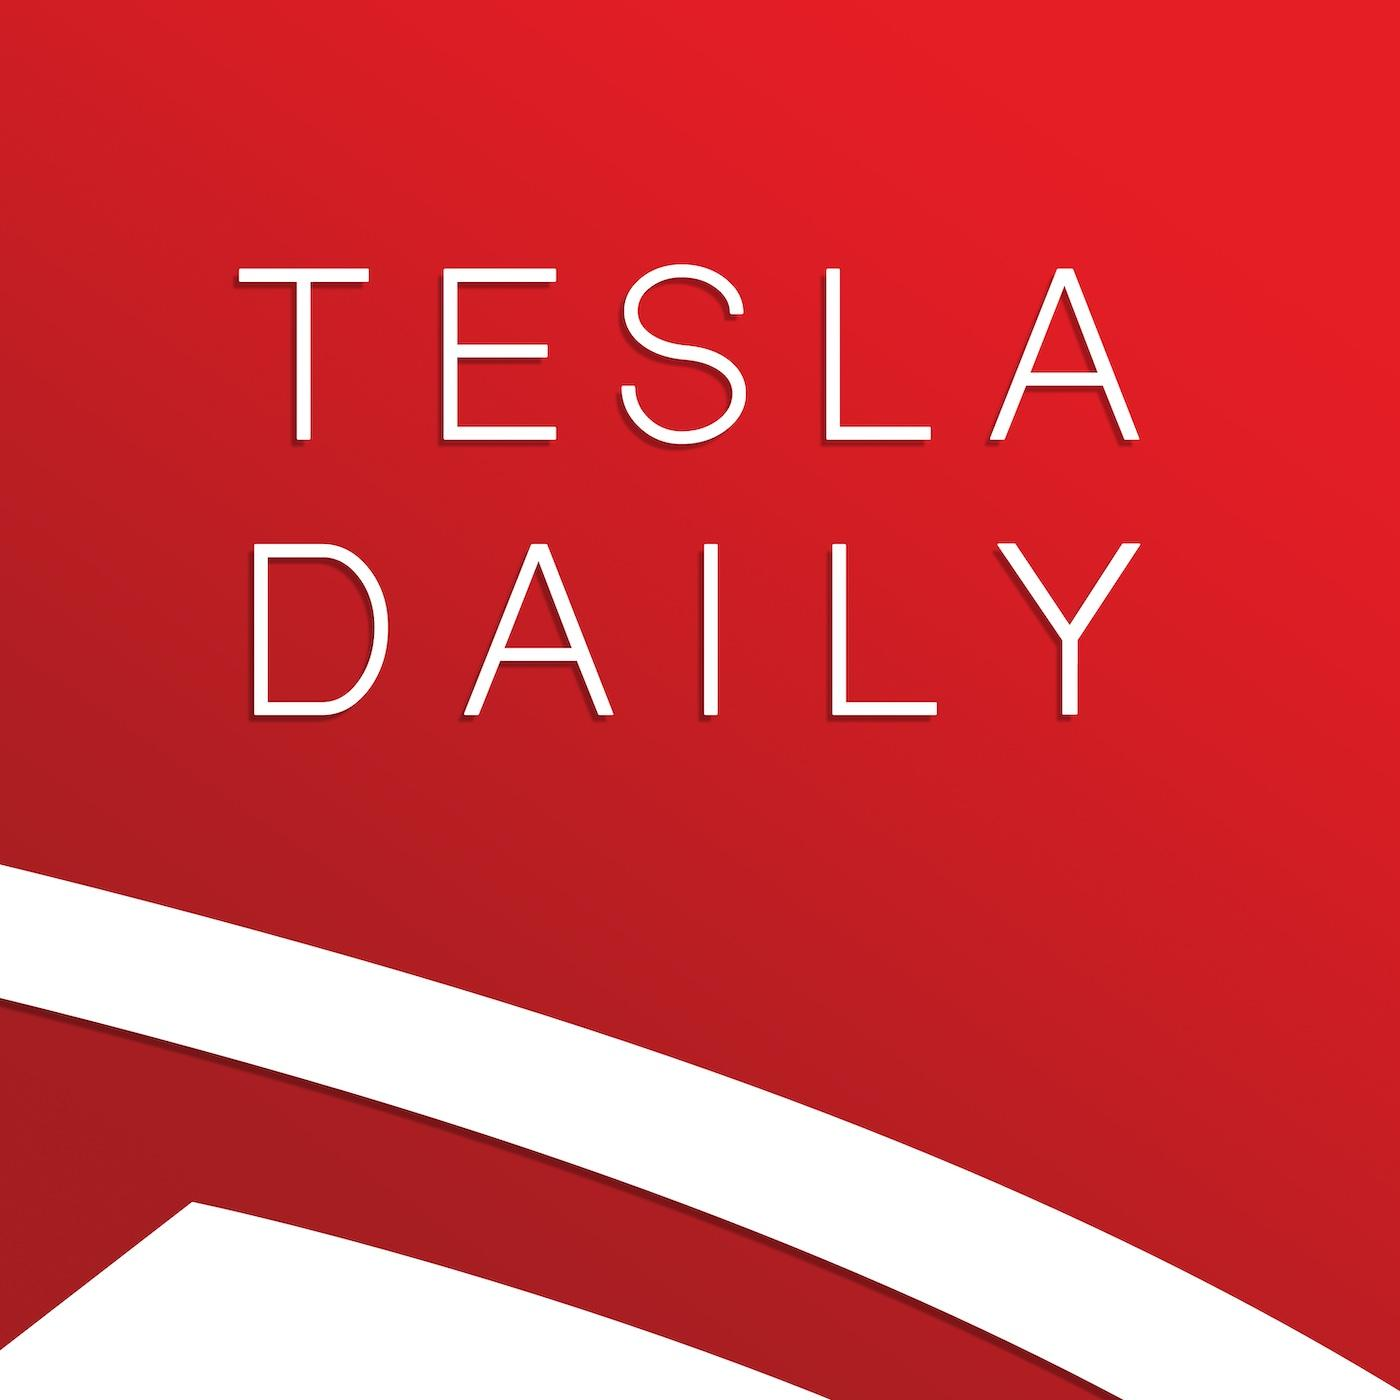 Musk Comments on Tesla Autonomy, Tesla Schedules Q2 Earnings Report (07.09.20)